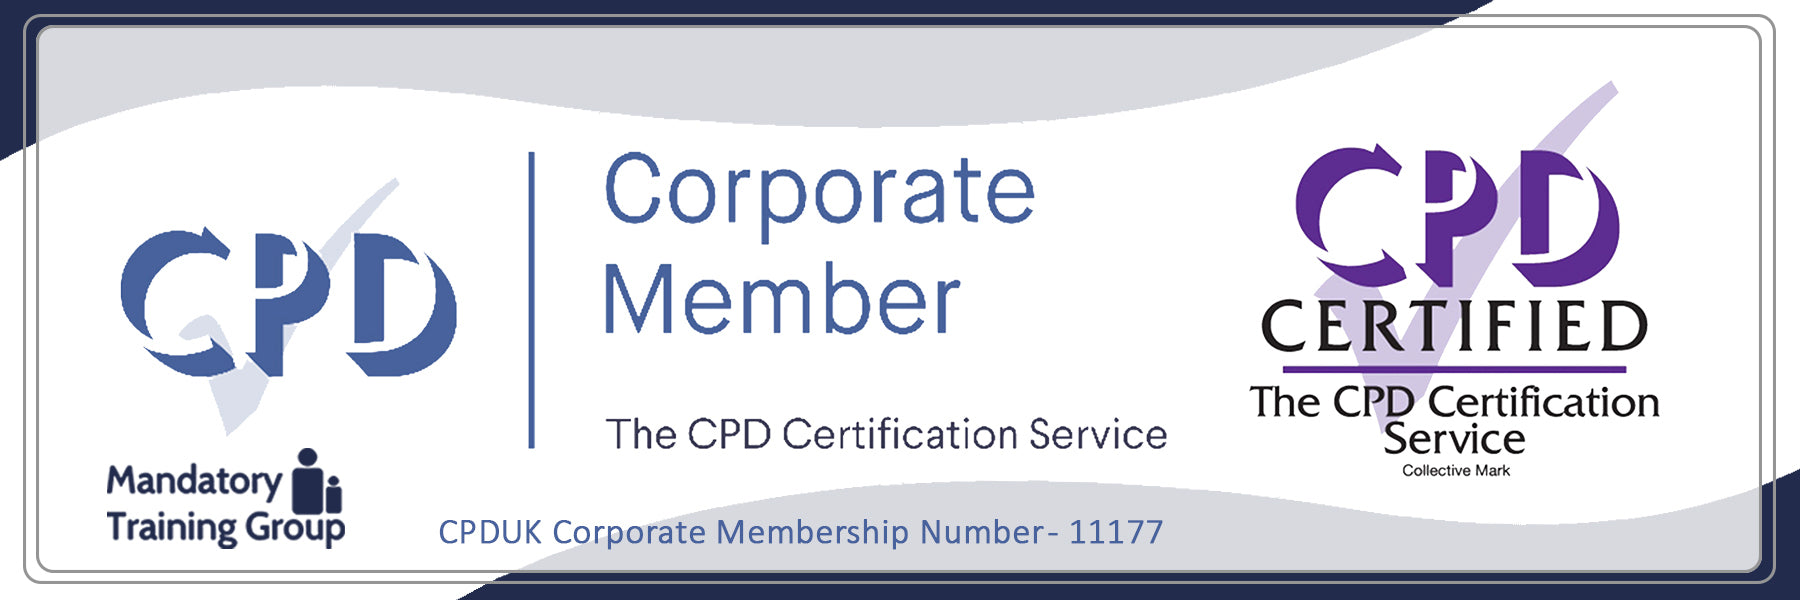 Recruitment - Online CPD Course - The Mandatory Training Group UK -